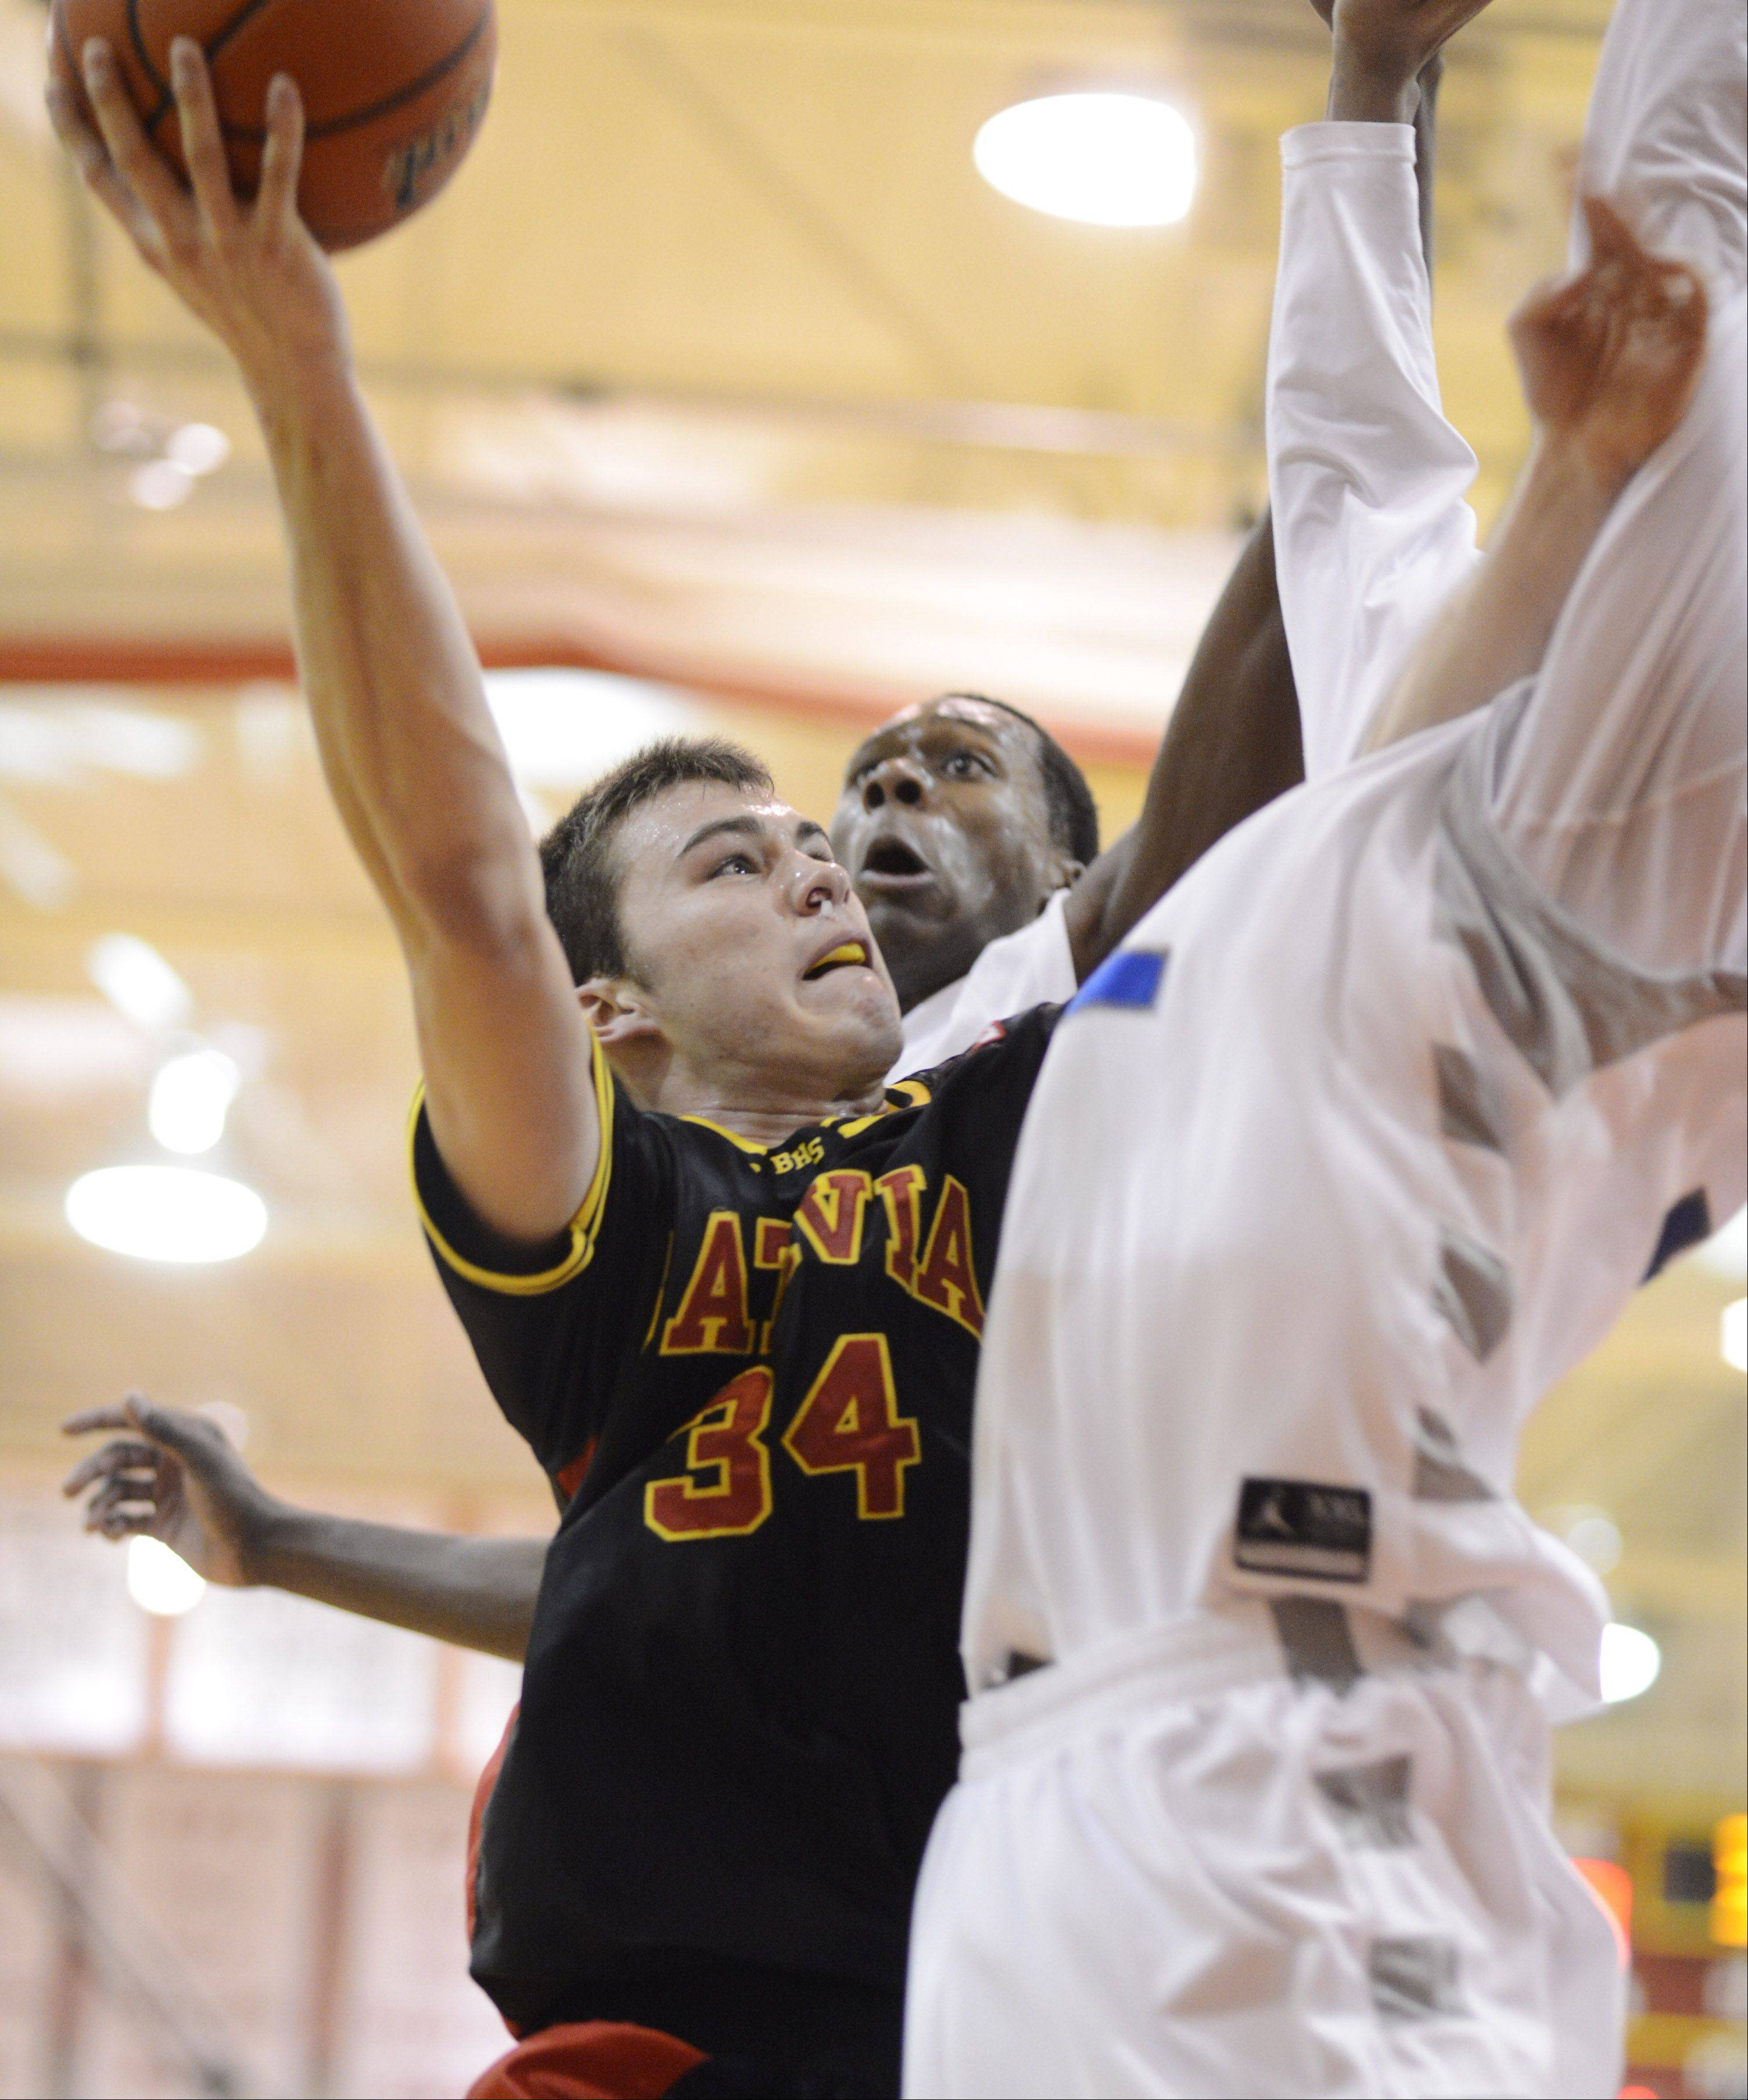 Batavia's Zach Strittmatter takes a shot against De La Salle during the 20th anniversary Night of Hoops at Batavia High School Saturday night.